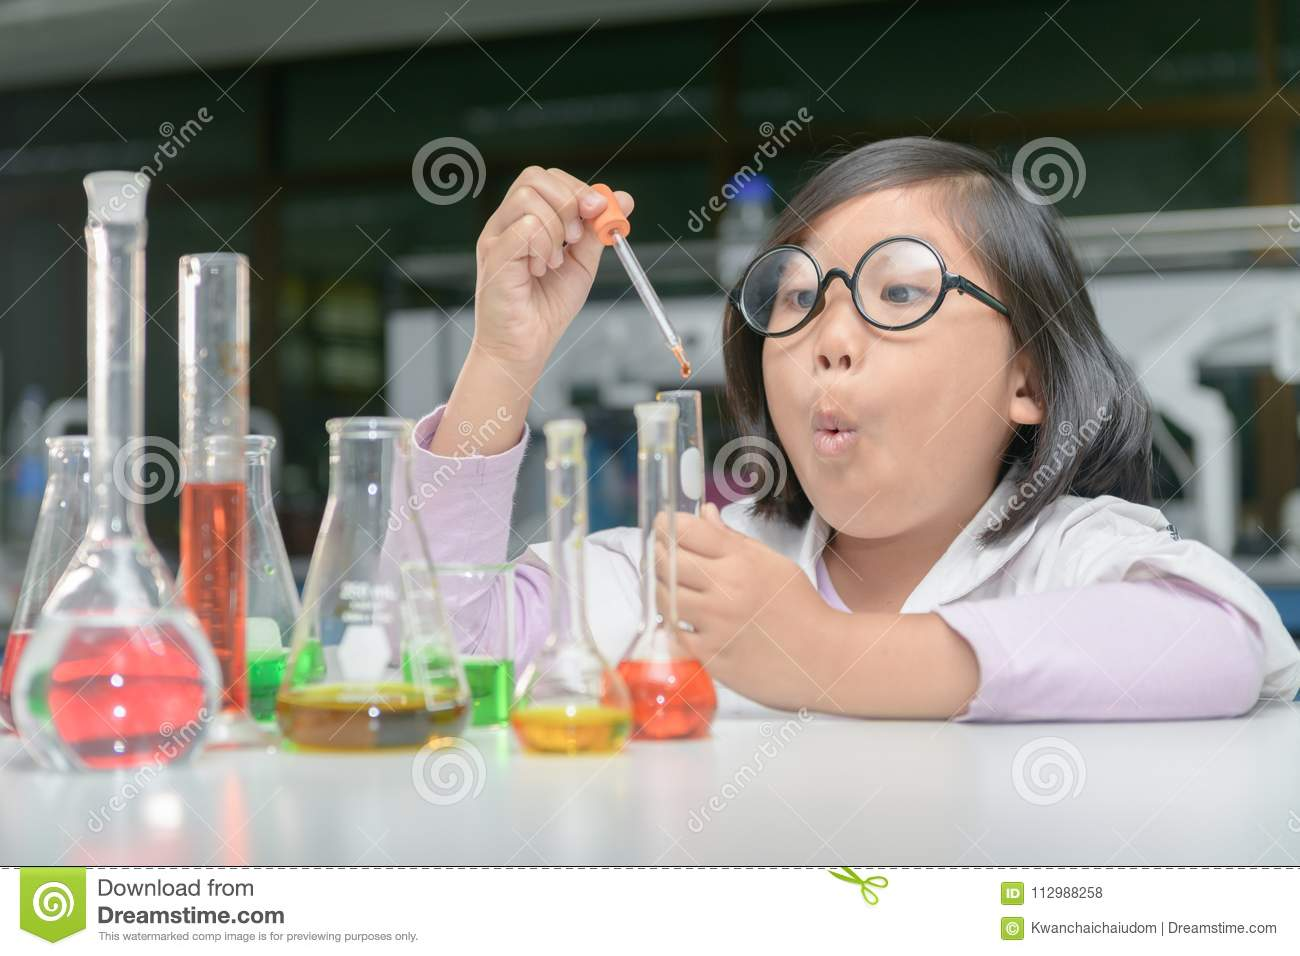 Excited girl making experiment with test tube